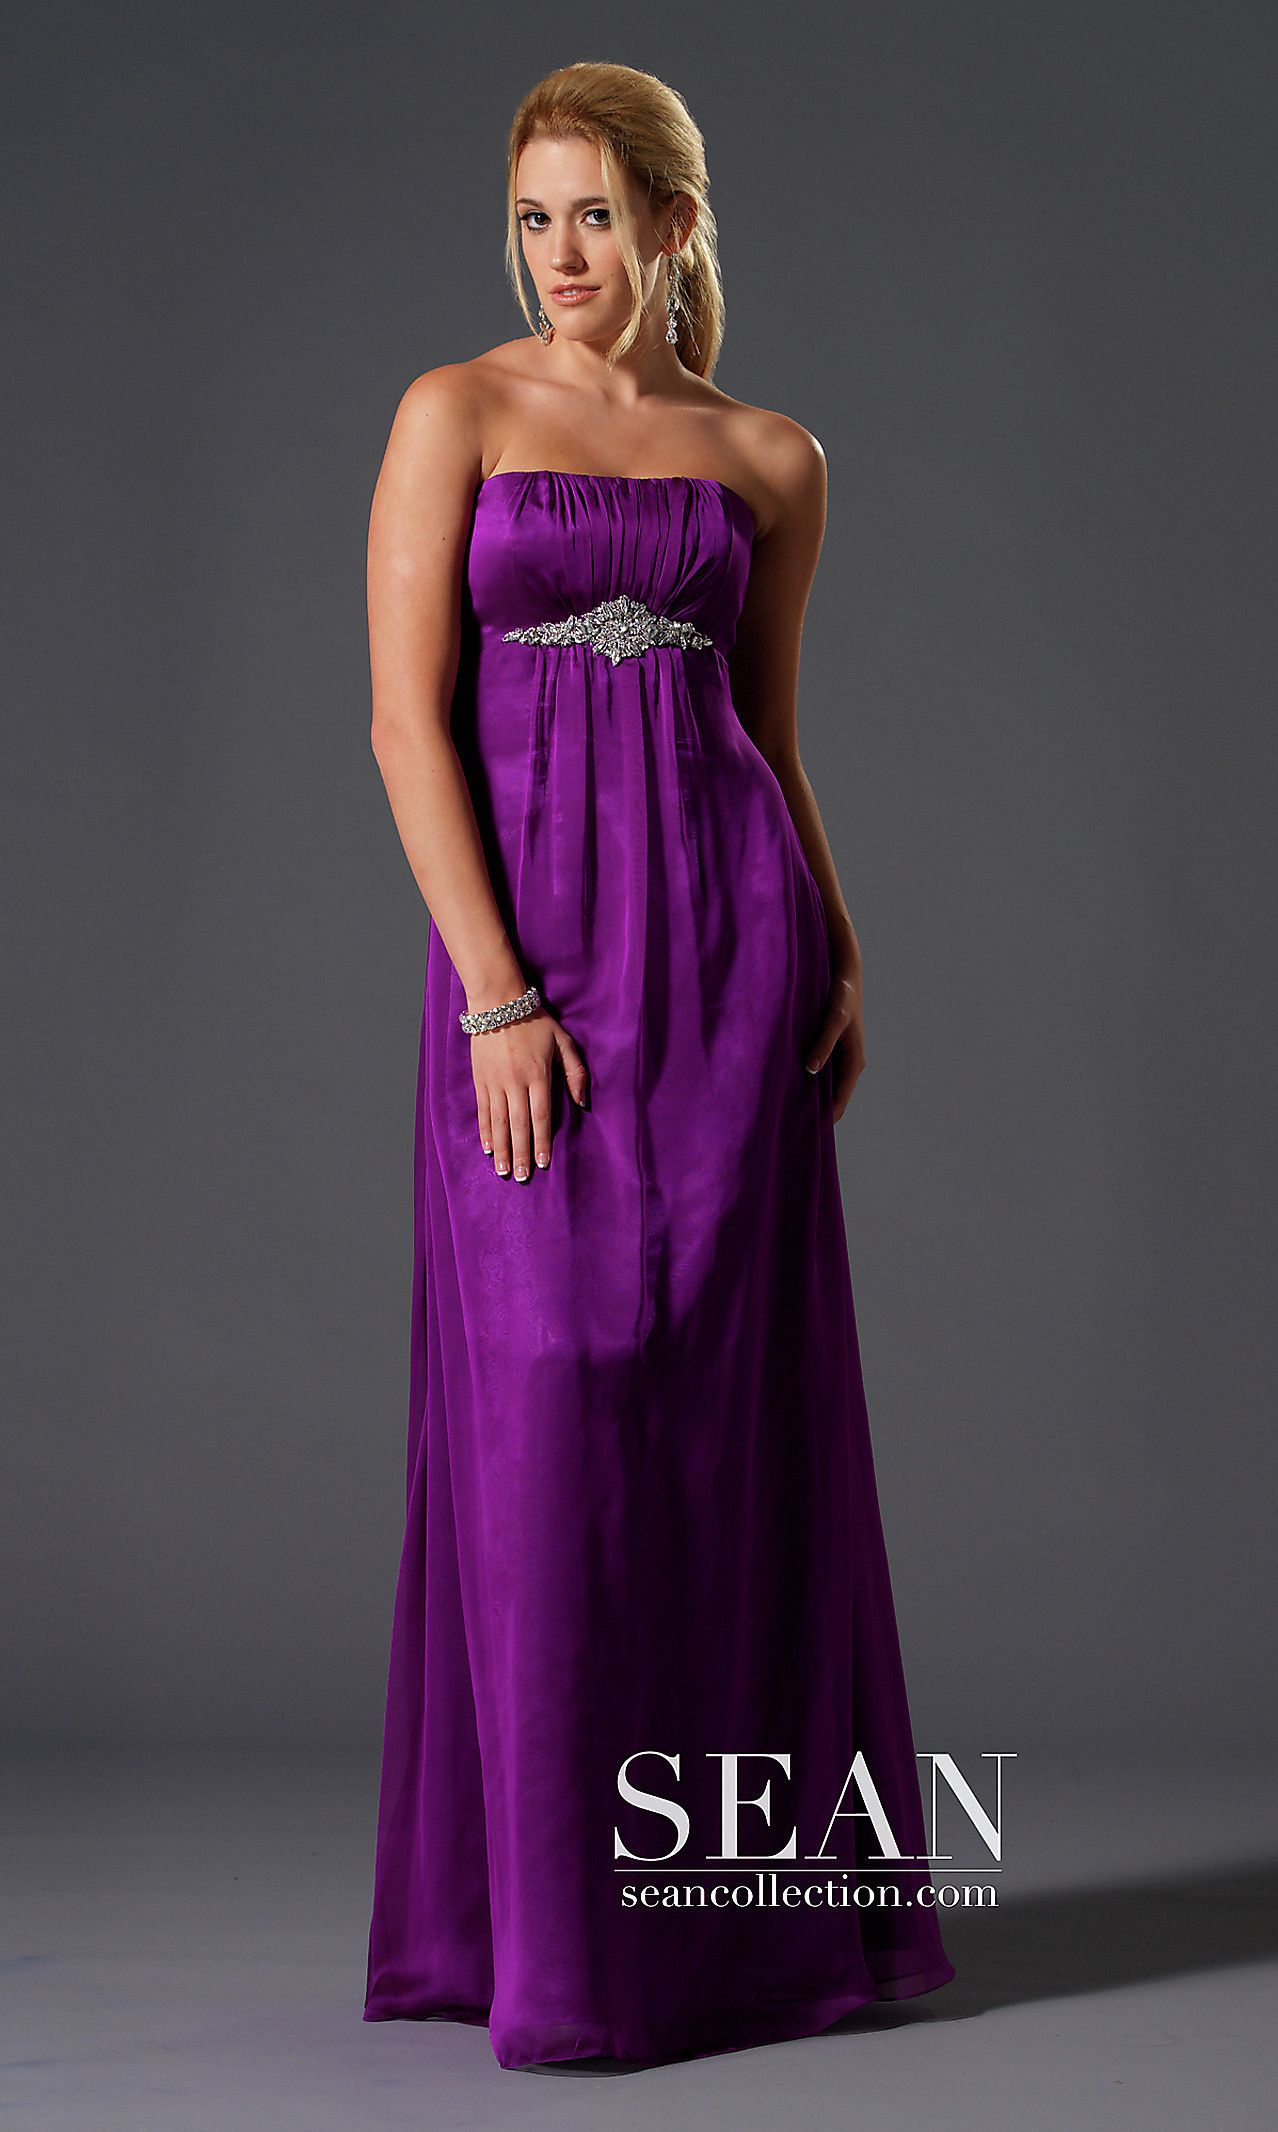 Pin de Hollie Rae en Prom Dresses! | Pinterest